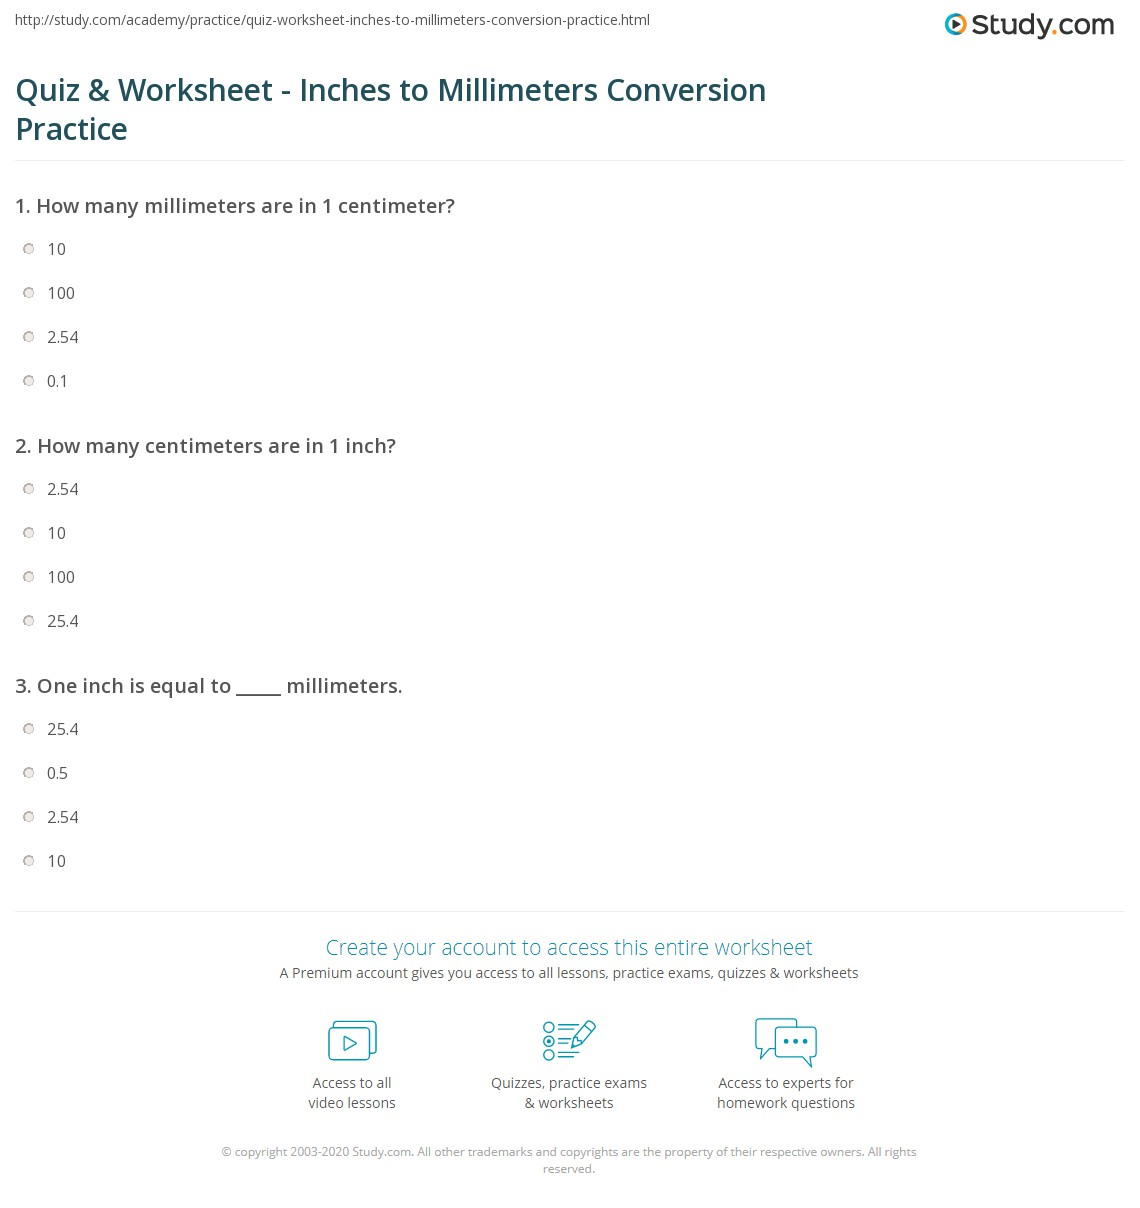 Worksheets Measurement Worksheets Inches quiz worksheet inches to millimeters conversion practice study com print converting 1 inch mm worksheet